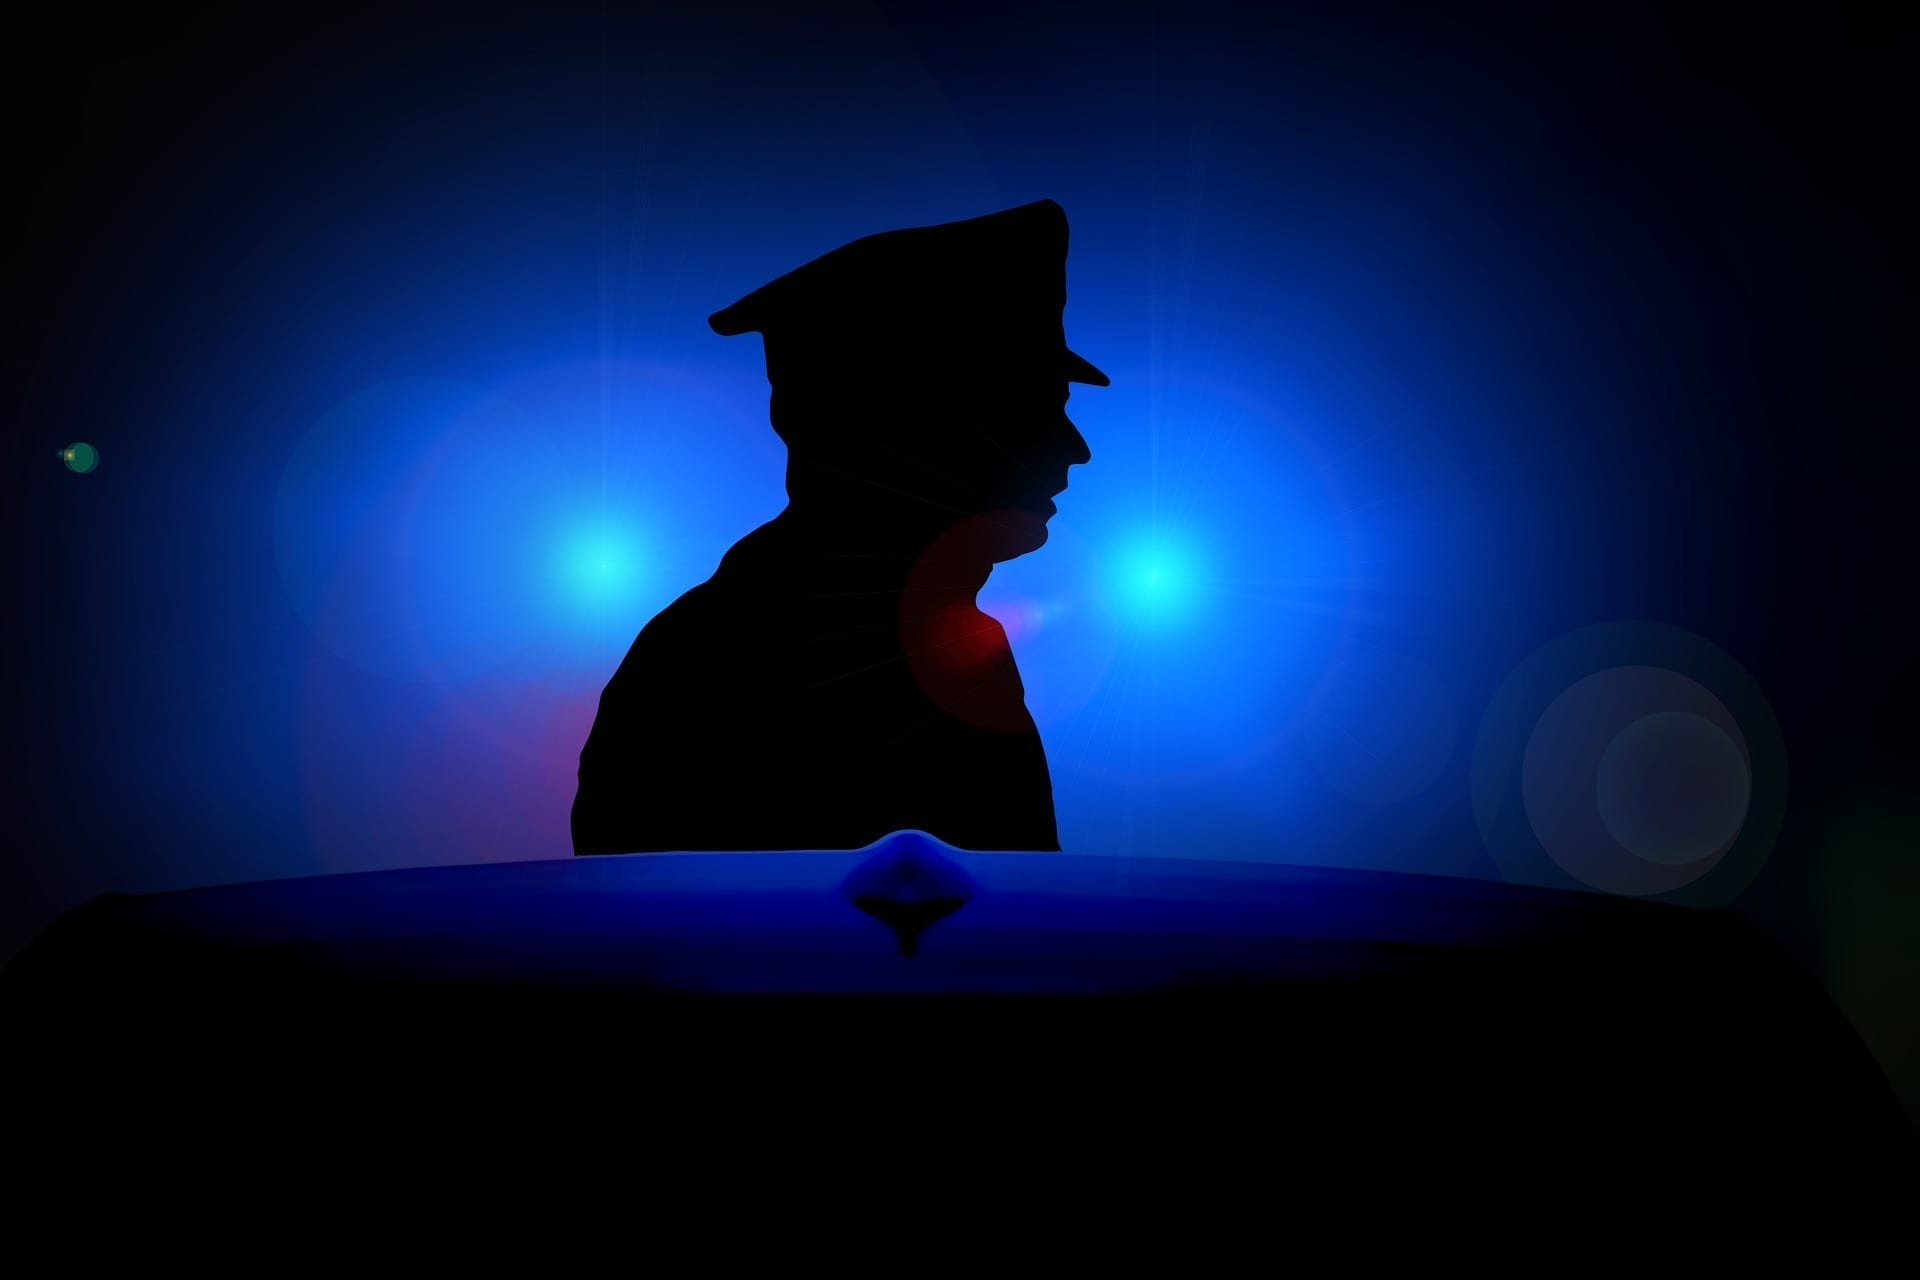 Police officer in silhouette with blue lights in background; image by geralt, via Pixabay, CC.0.